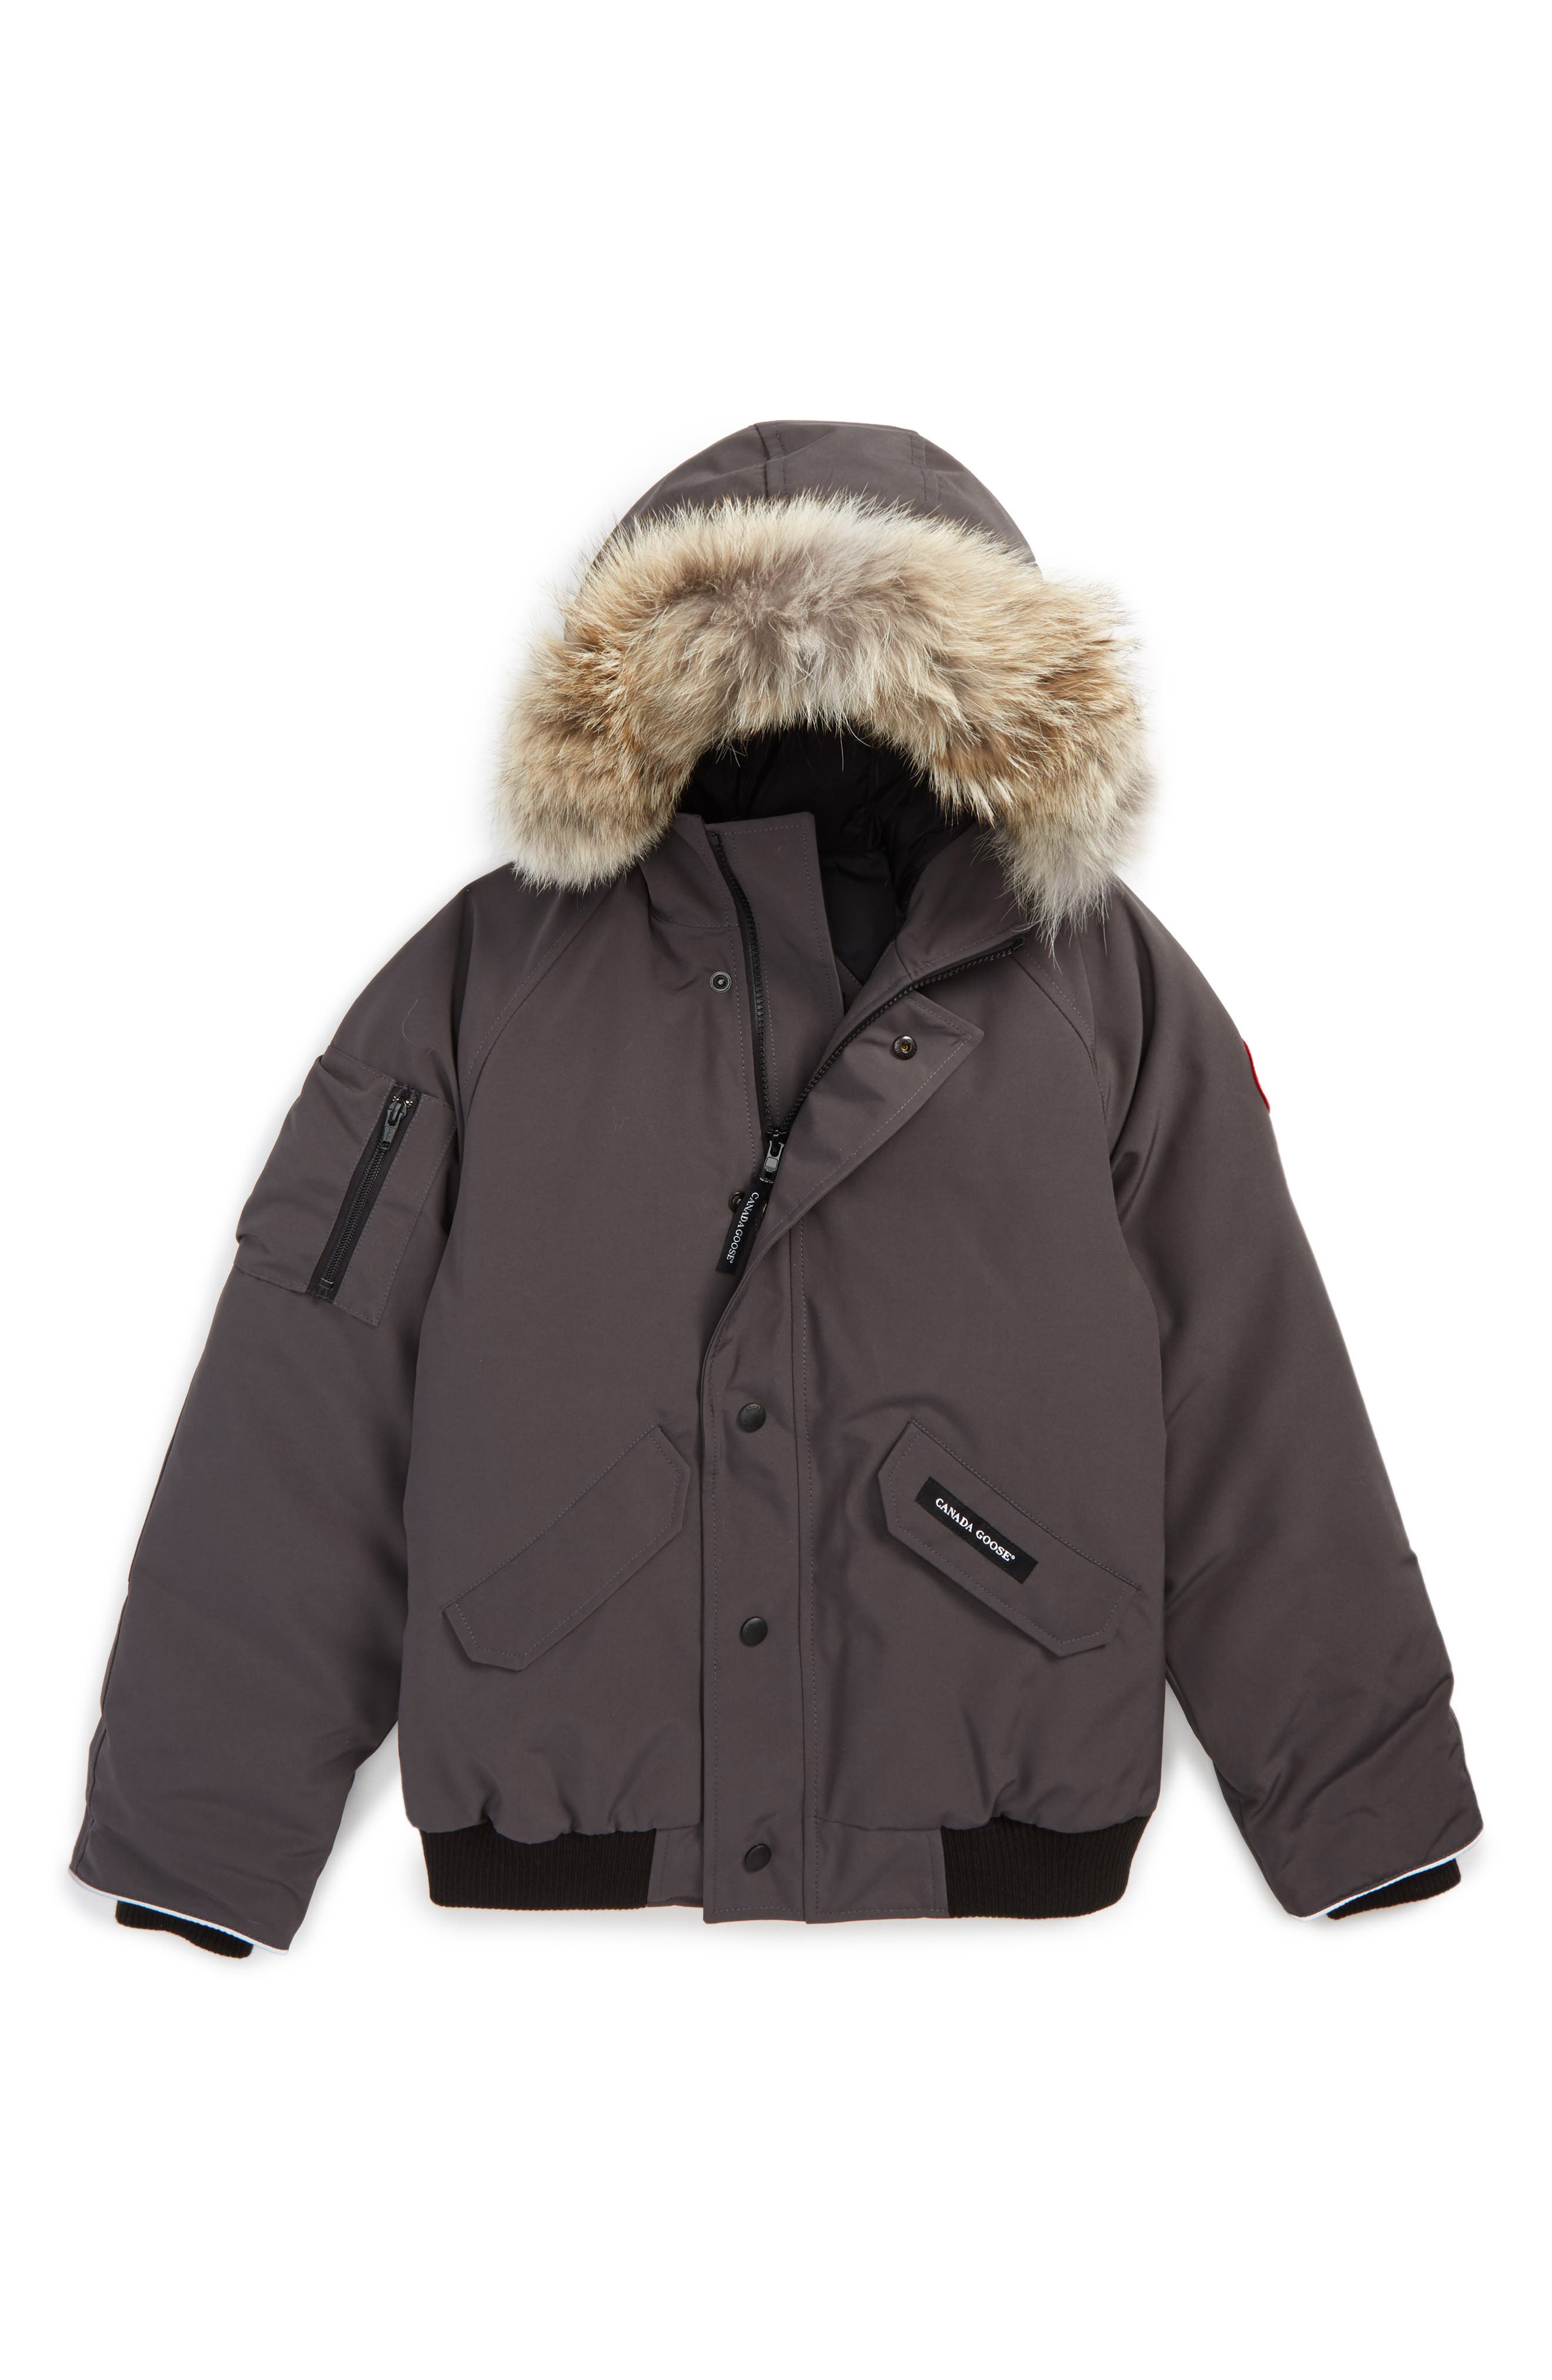 Main Image - Canada Goose 'Rundle' Down Bomber Jacket with Genuine Coyote Fur Trim (Little Kid & Big Kid)